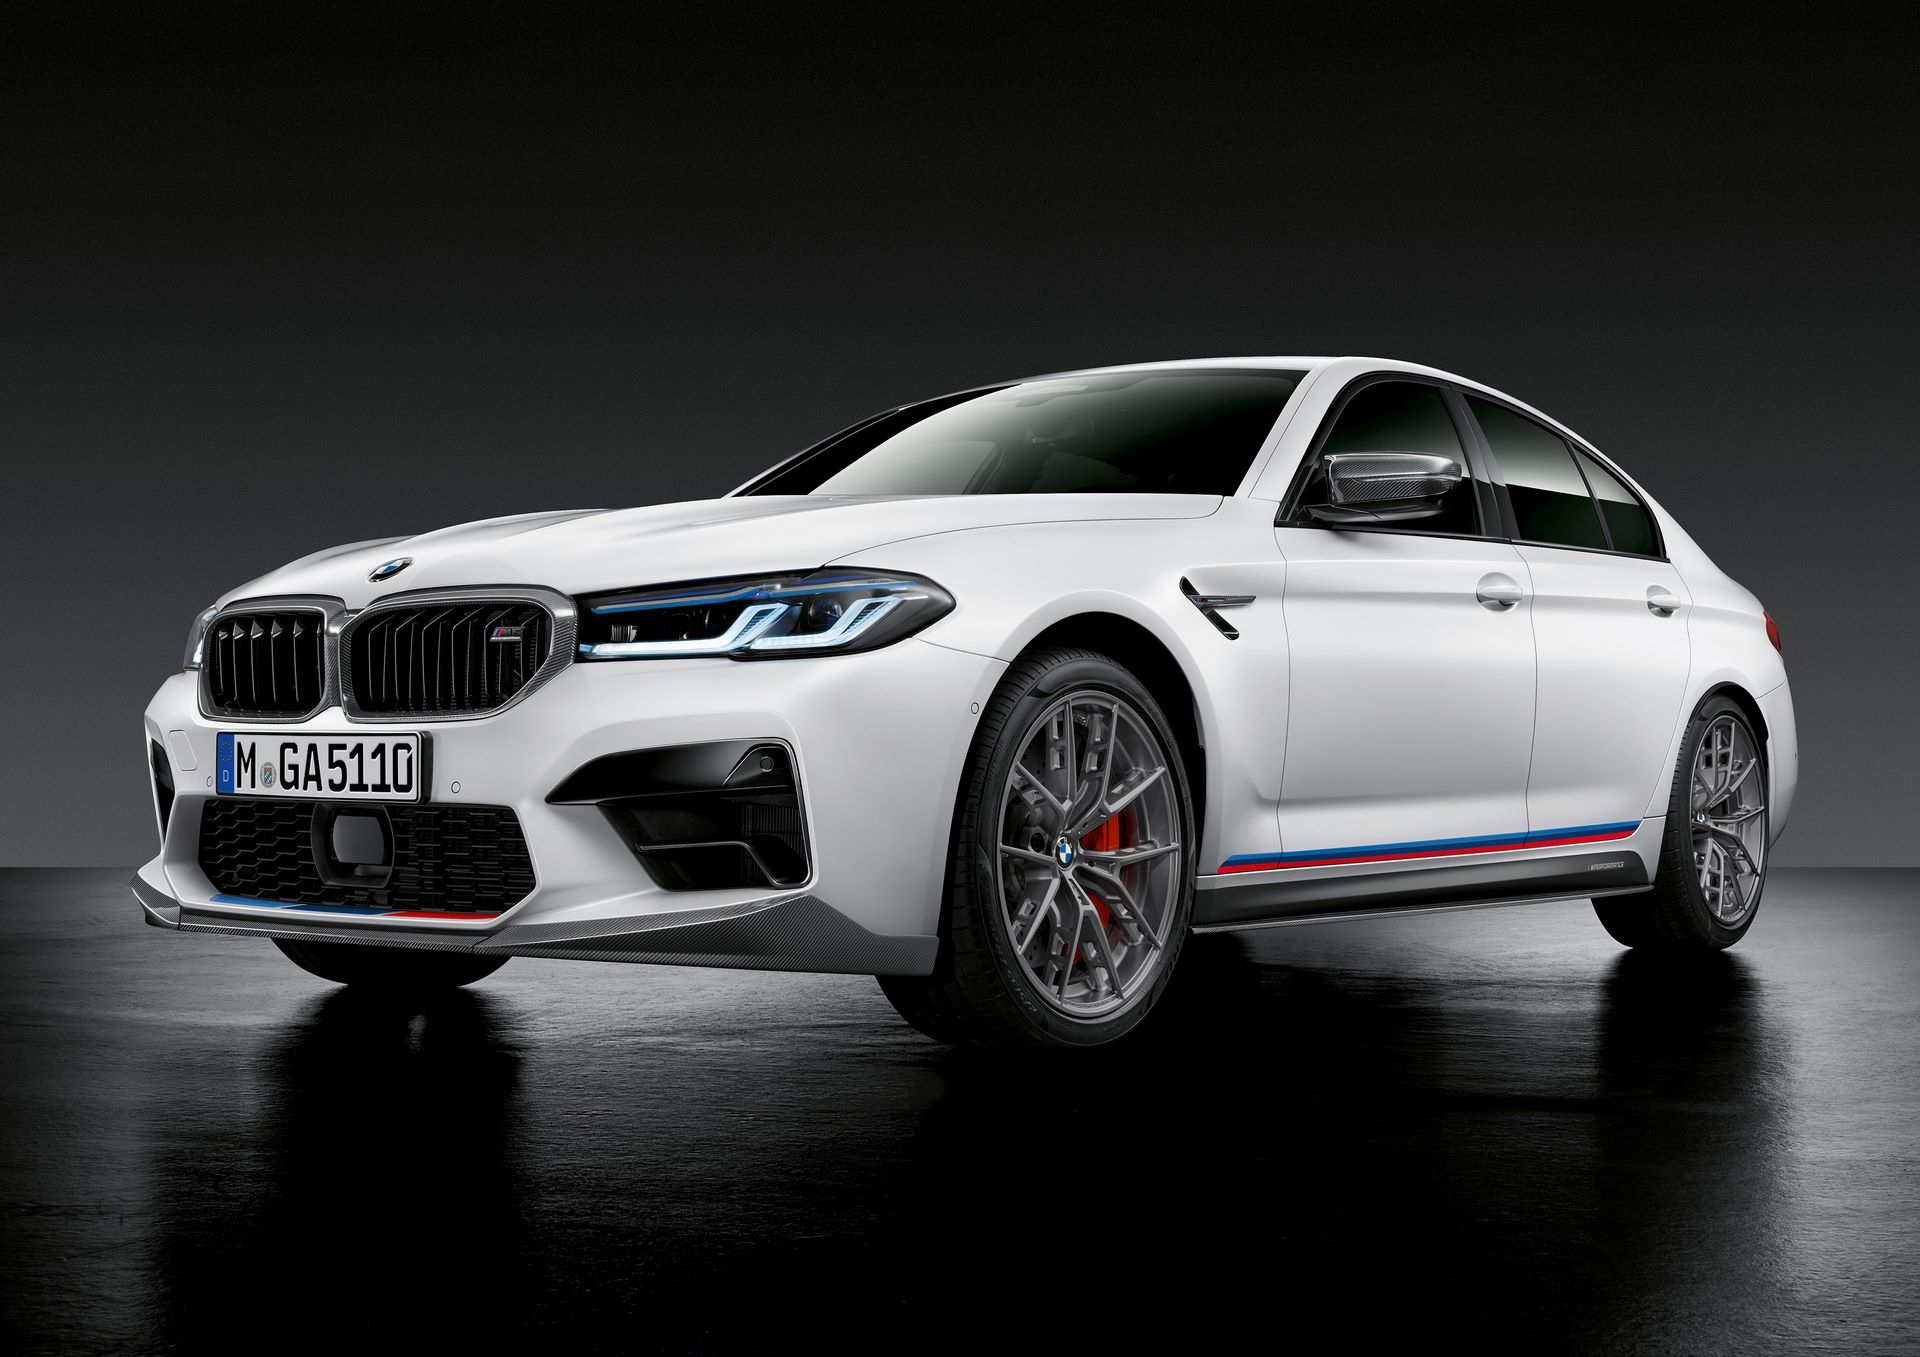 BMW-M-Performance-Parts-for-5-Series-M5-and-M5-Competition-41